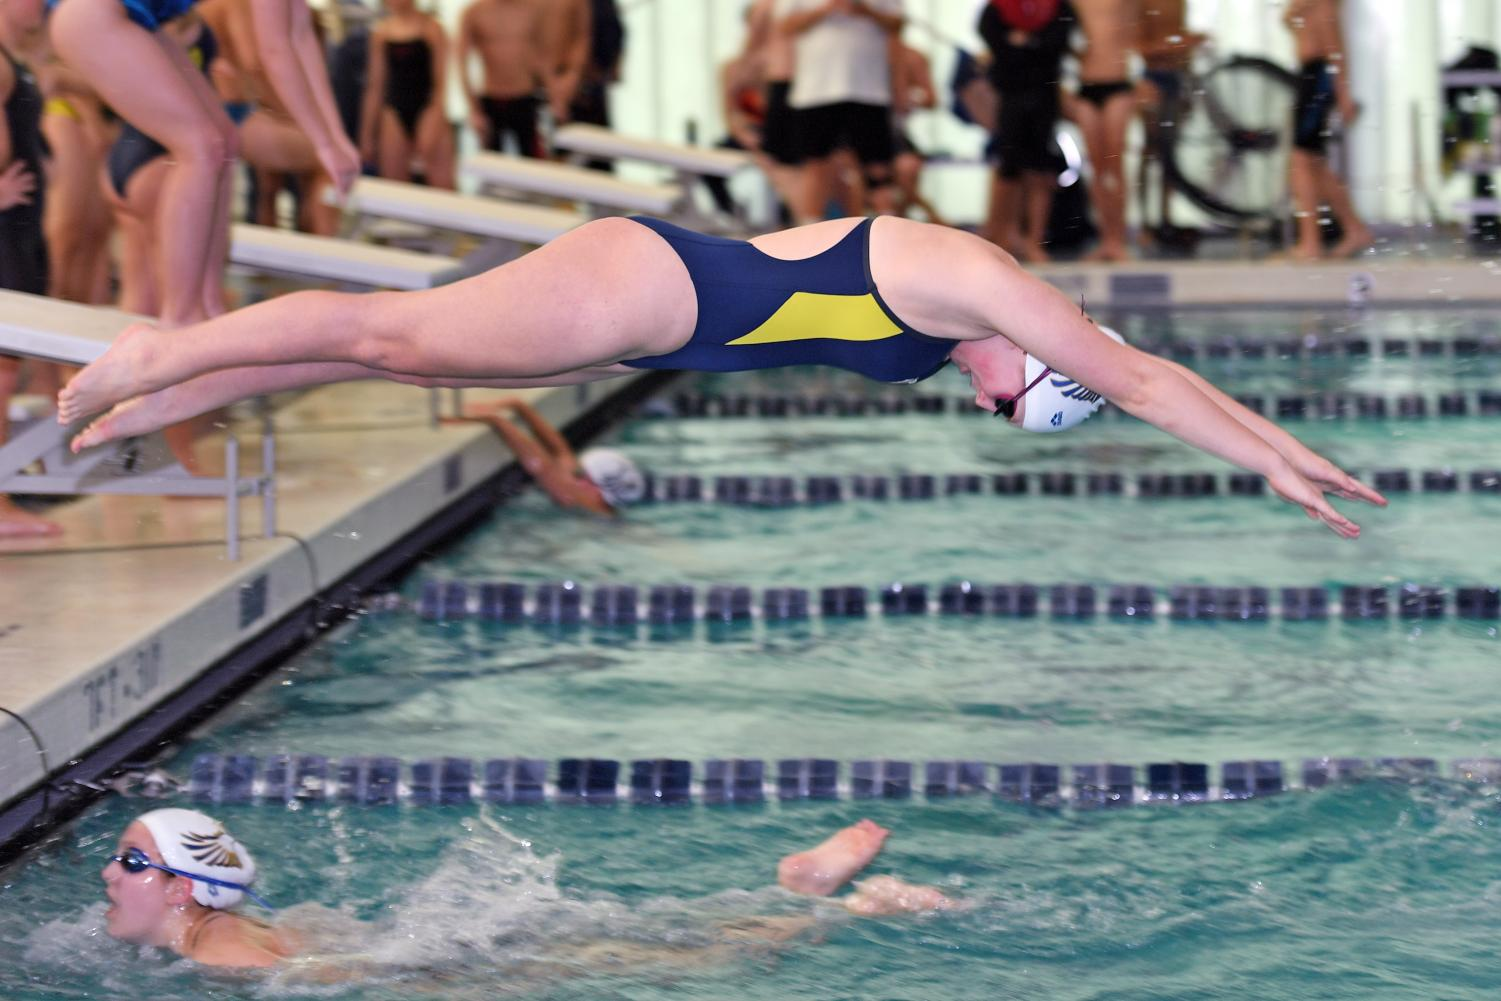 Peddie swimmer diving into the water. Photo Courtesy of Andrew Marvin.